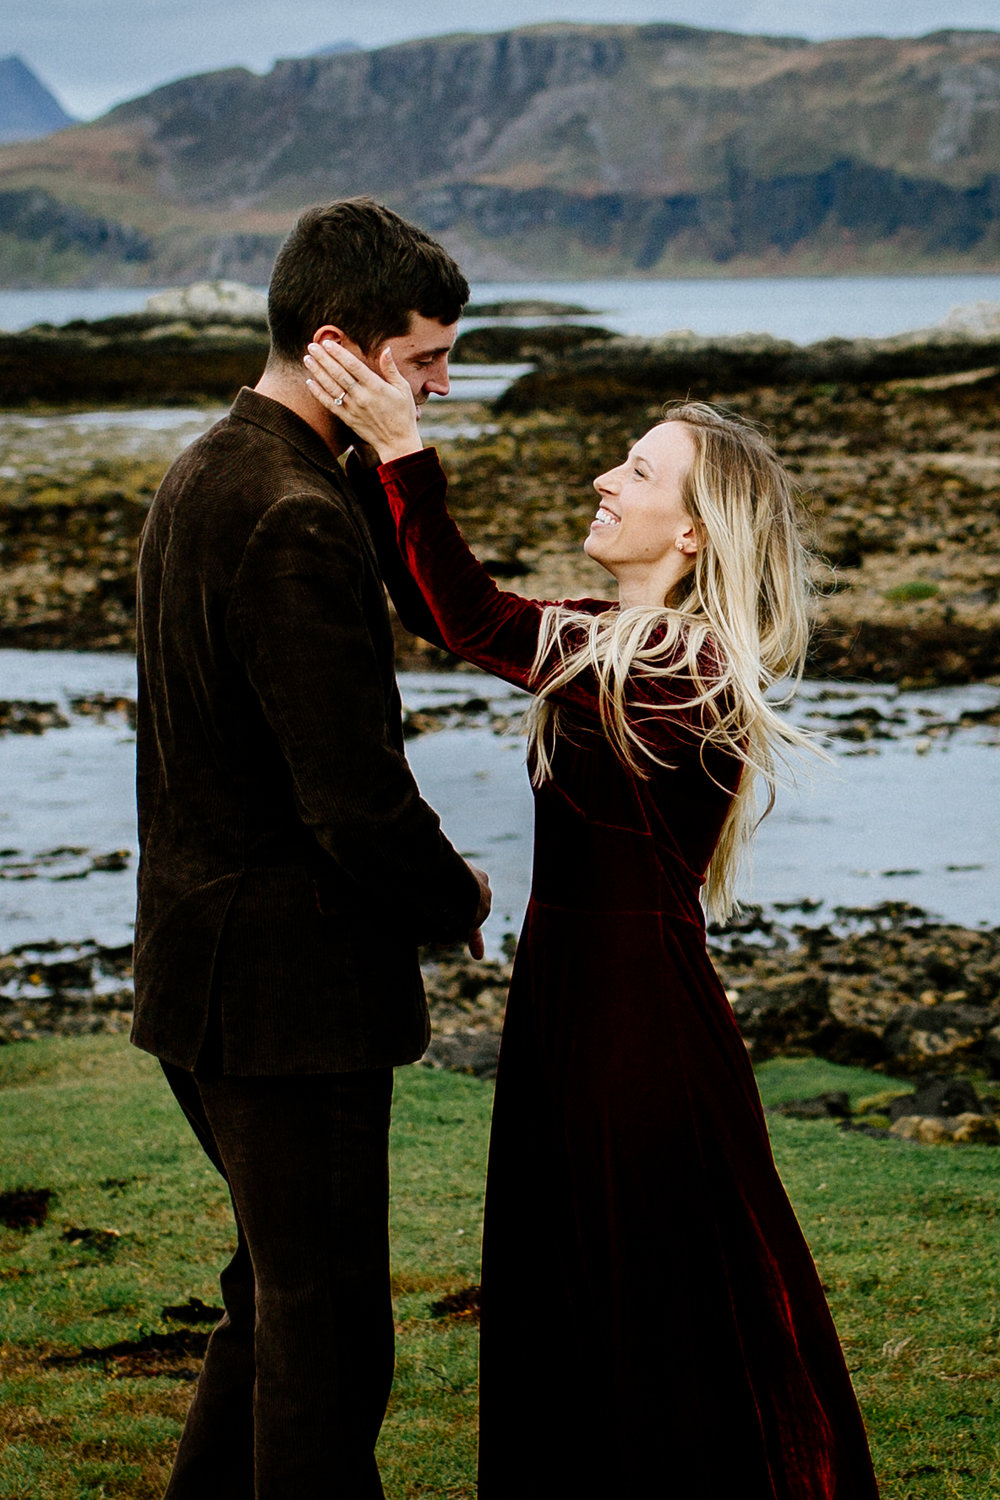 Jen_Montgomery_Photography_Engagement_AJ_Scotland_FB-39.jpg